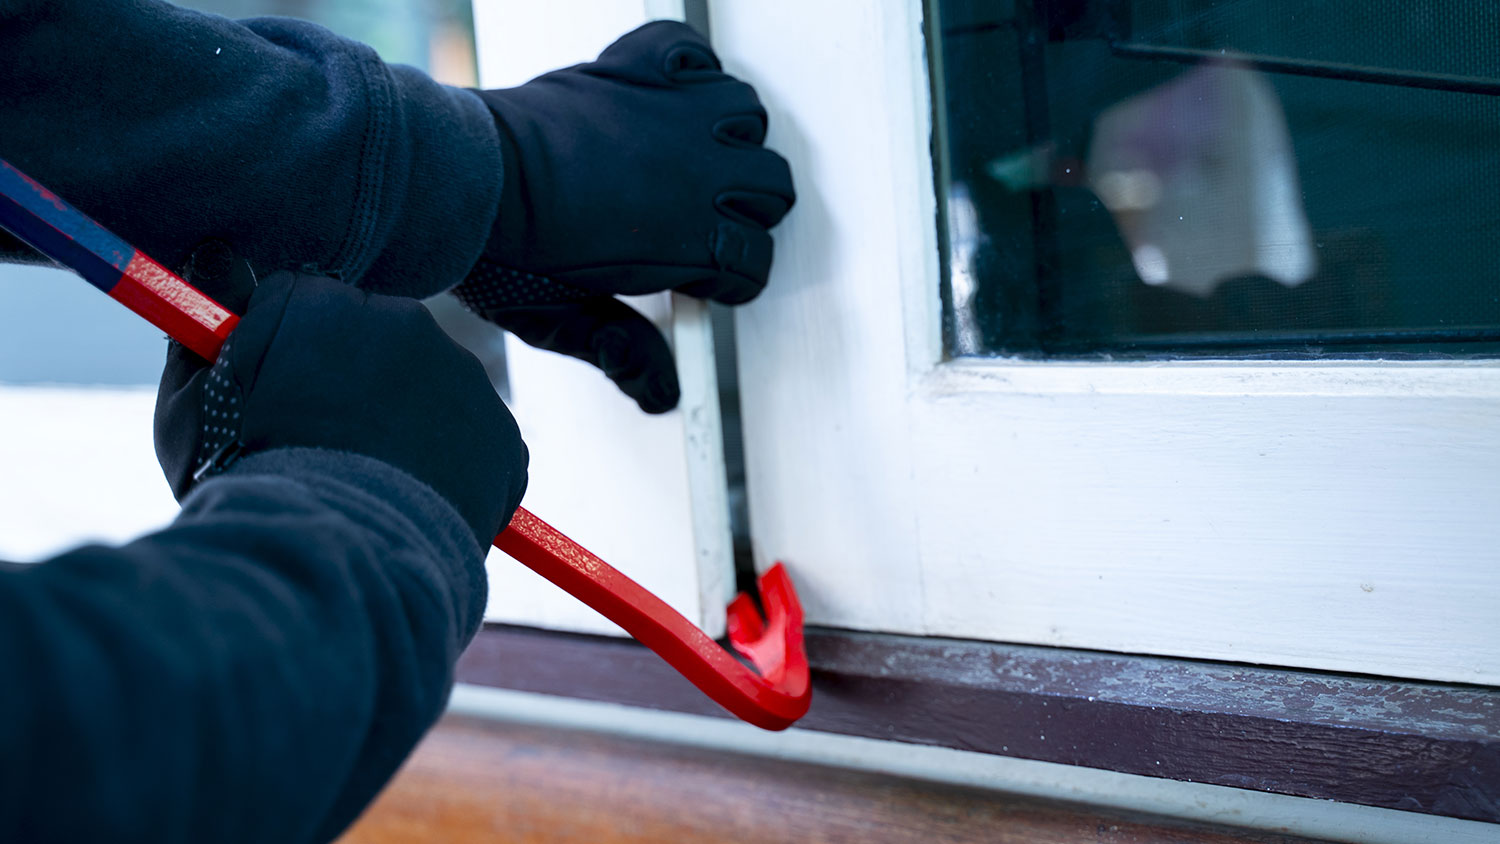 HOW TO PROTECT YOUR HOME BY THINKING LIKE A BURGLAR